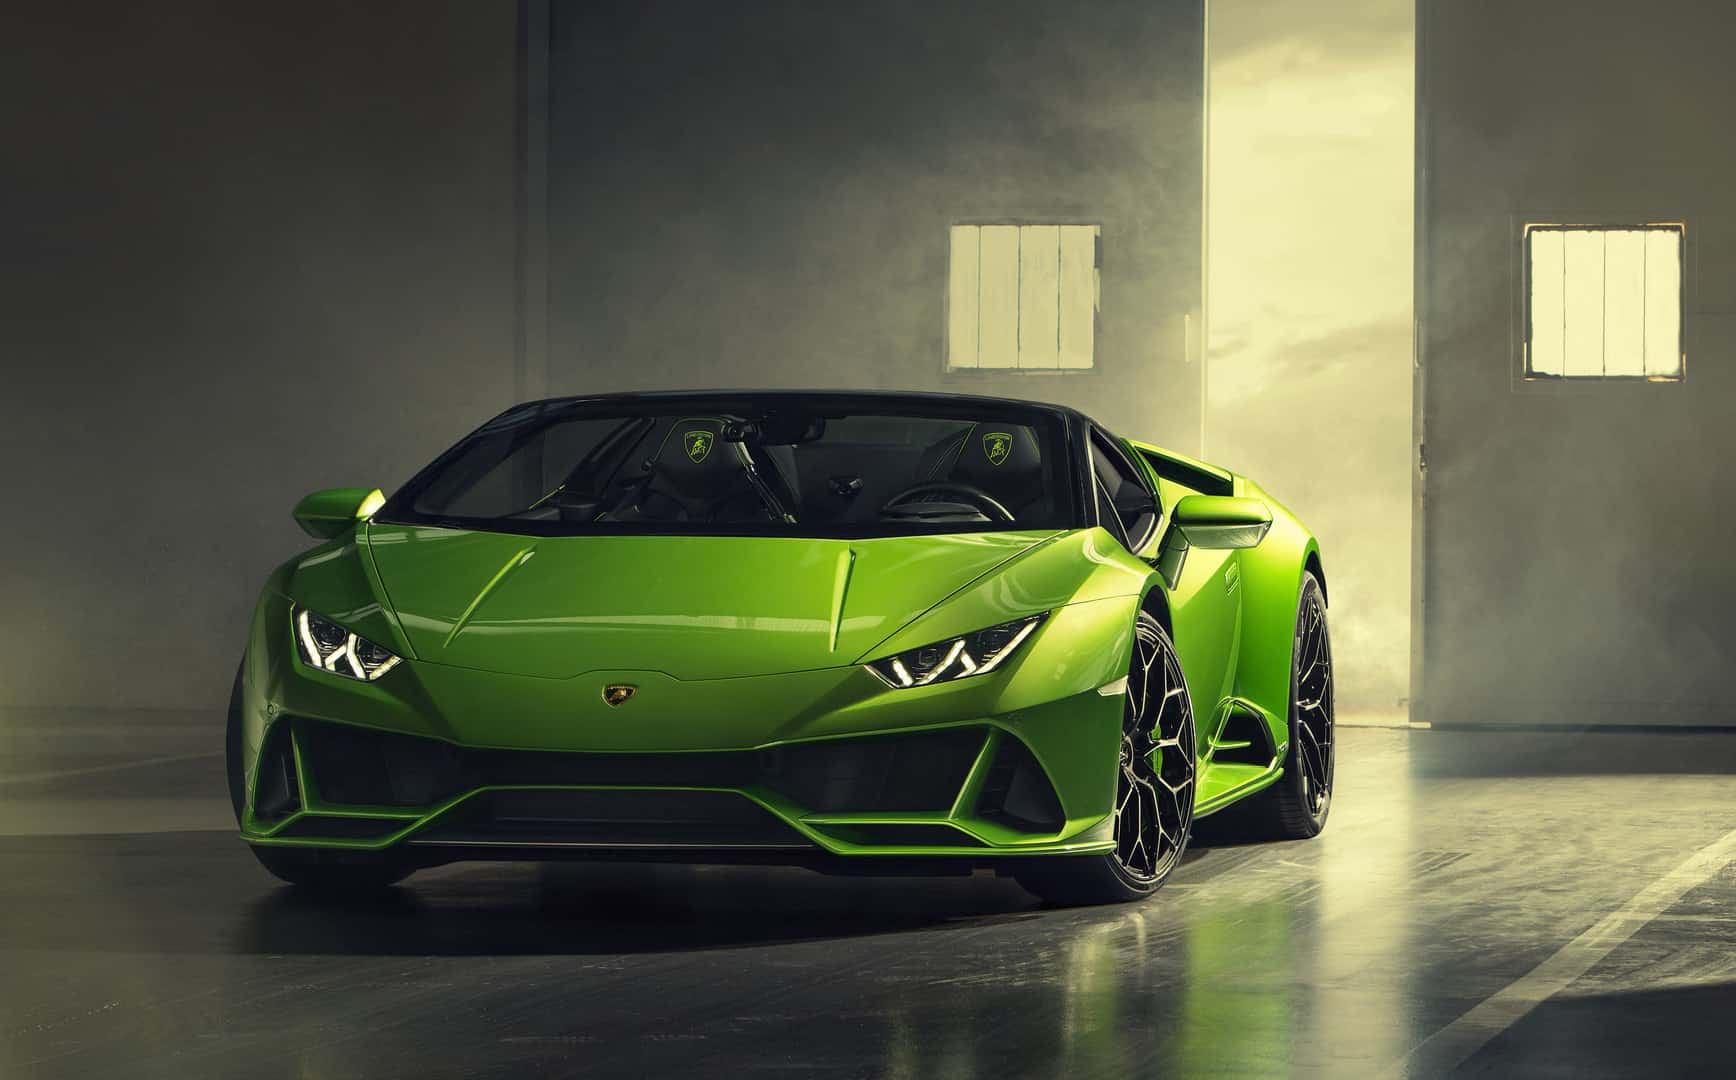 The Lamborghini Huracan EVO Spyder is Here to Impress Everyone